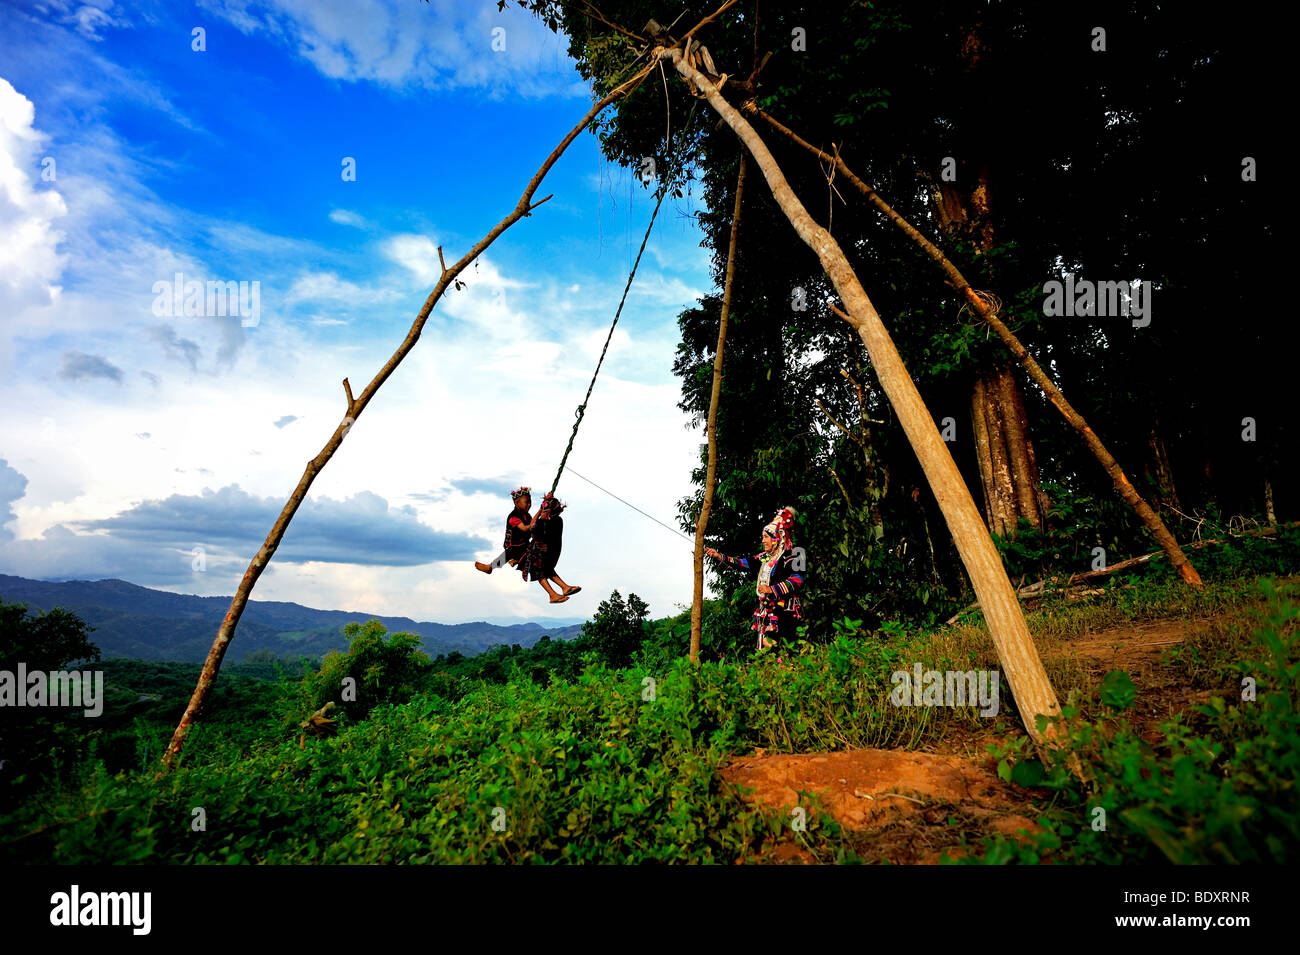 swing-ceremony-of-the-akha-tribe-in-chia